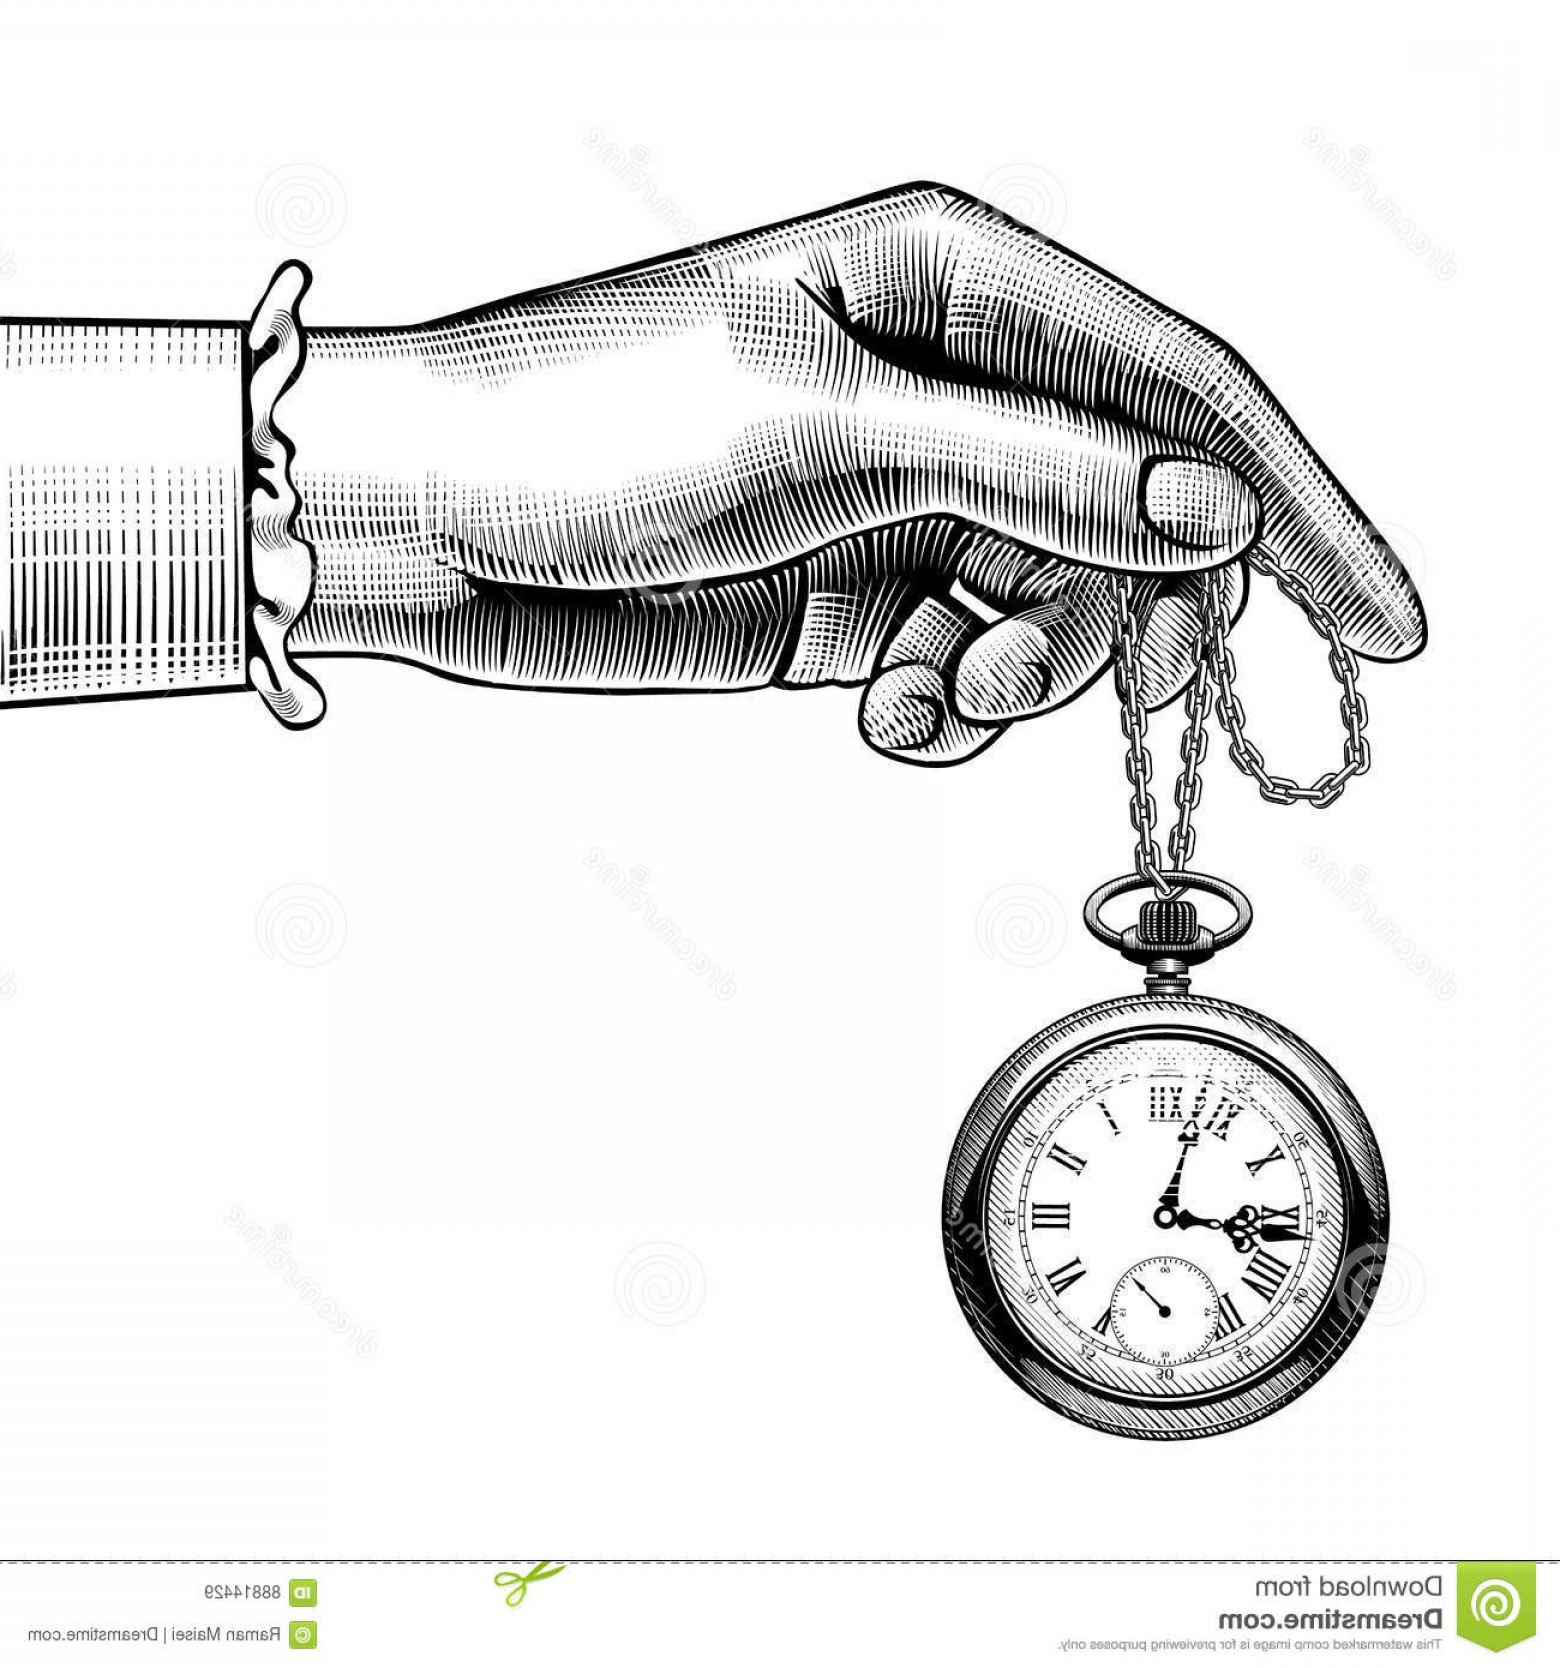 Fancy Wrist Watch Vector: Stock Illustration Woman S Hand Retro Pocket Watch Vintage Stylized Drawing There Addition Vector Format Eps Image